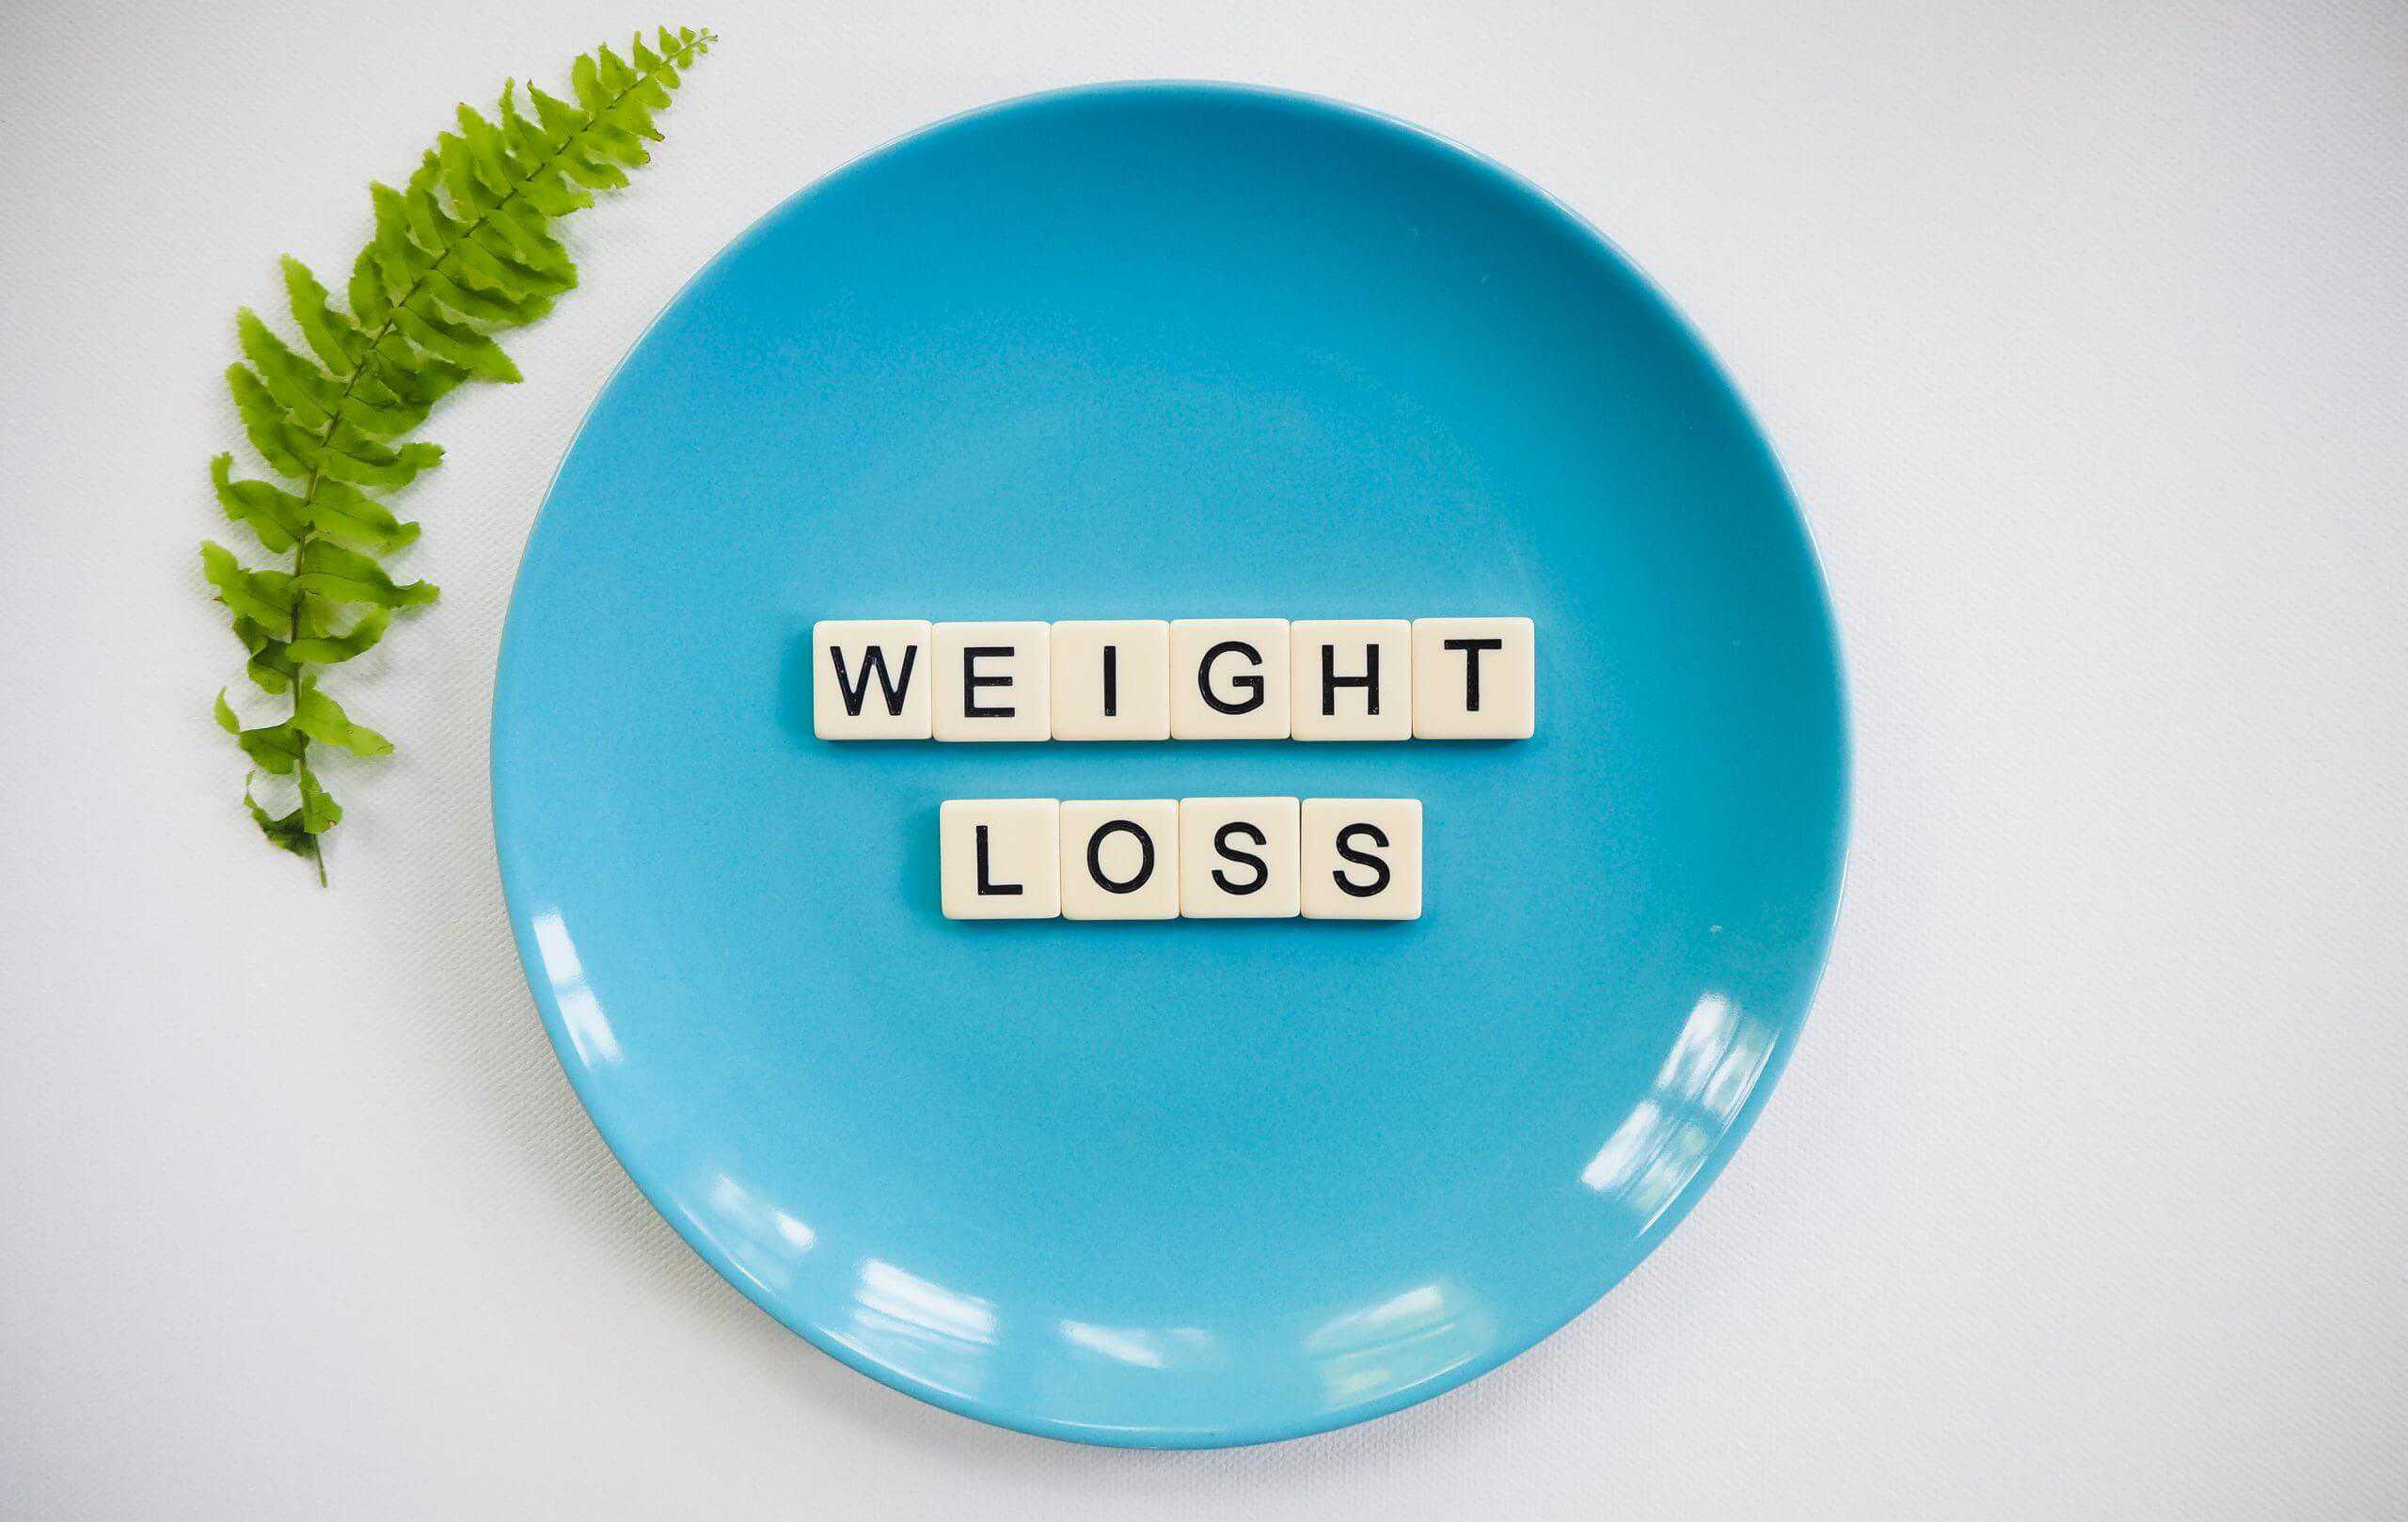 Why Can't I Loose Weight? Details & More About It